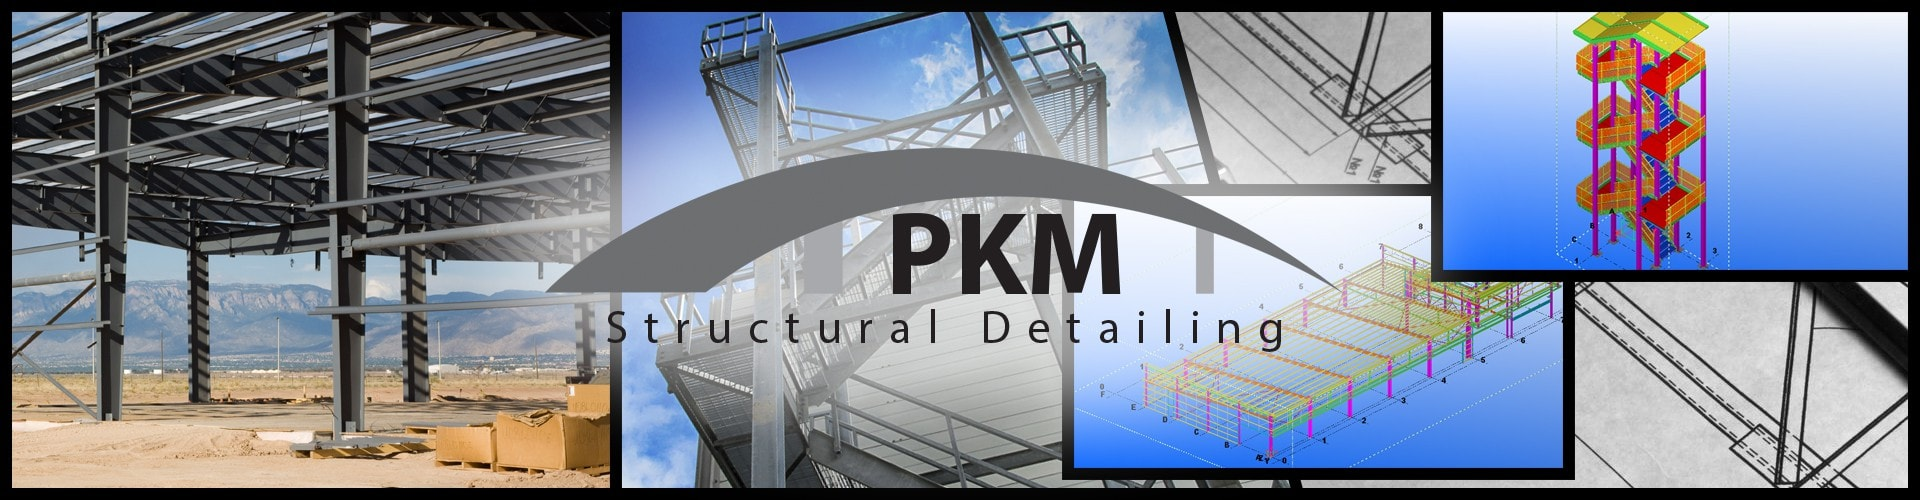 pkm-sd.co.uk slide1